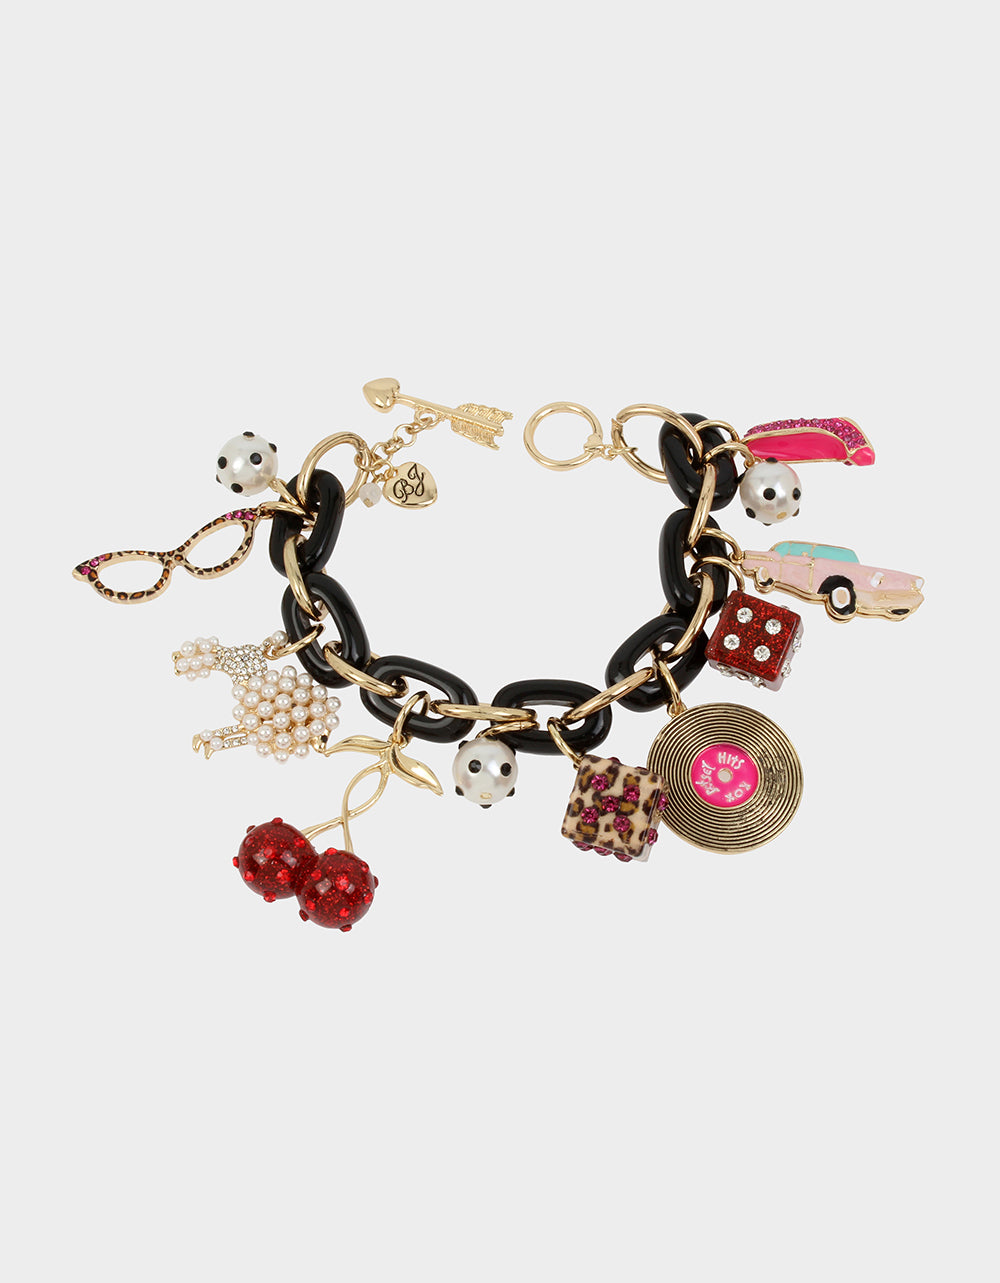 RETRO GLAM STATEMENT BRACELET MULTI - JEWELRY - Betsey Johnson